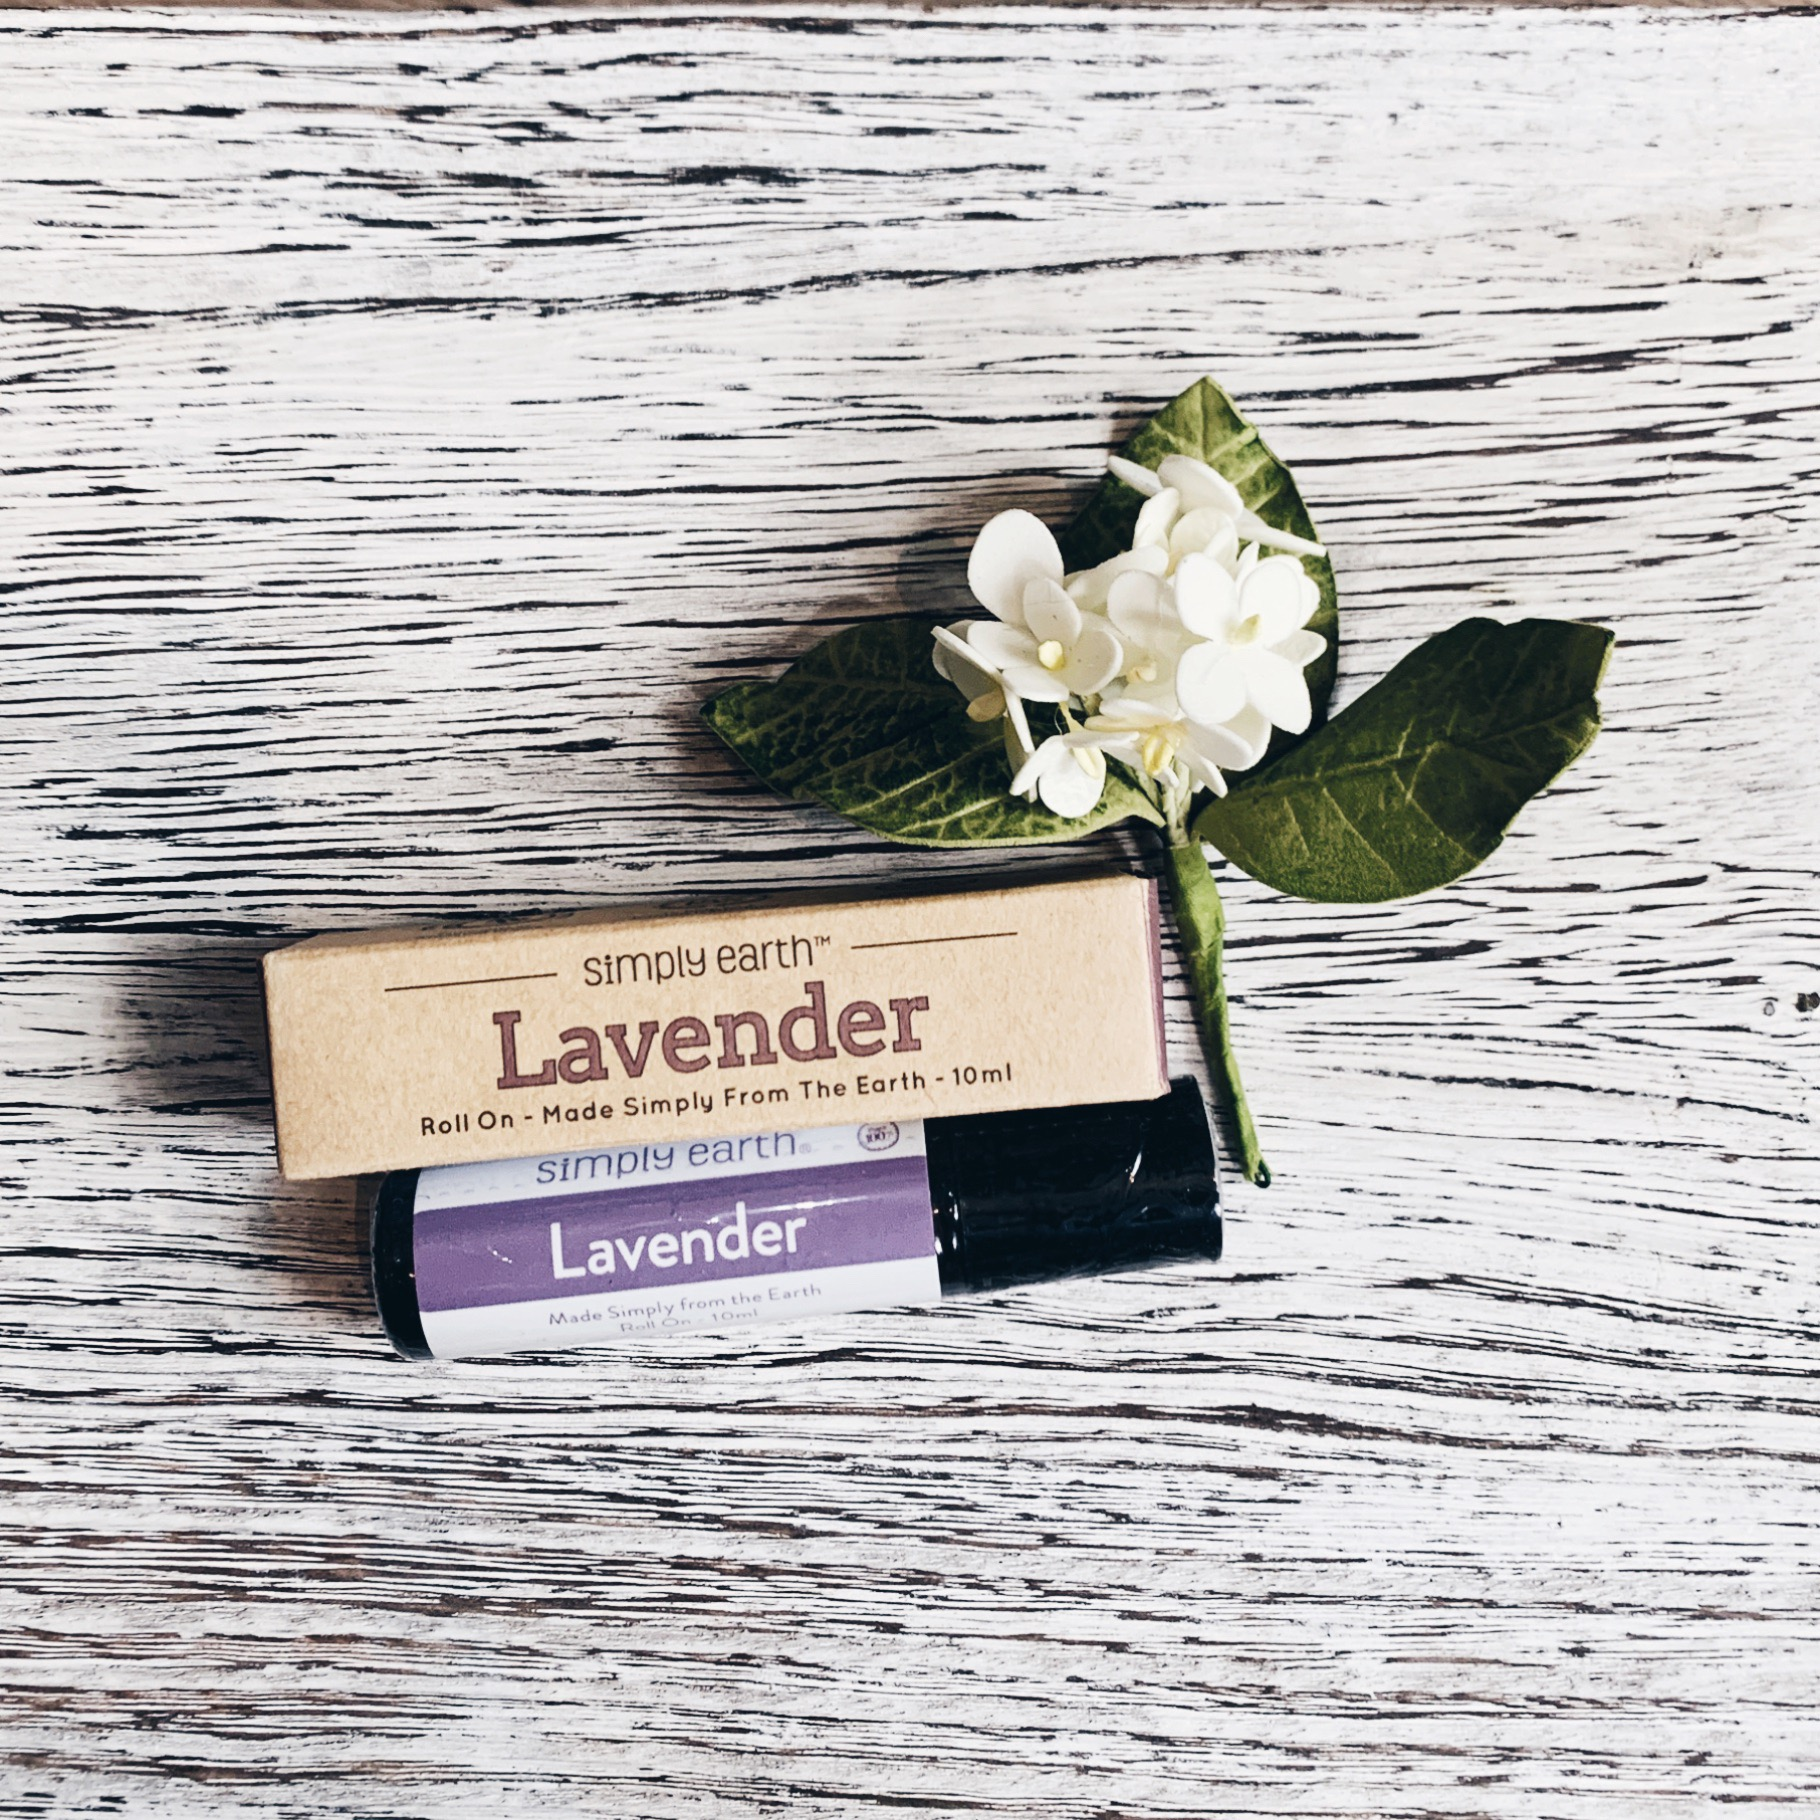 Lavender Roll On is our favorite.